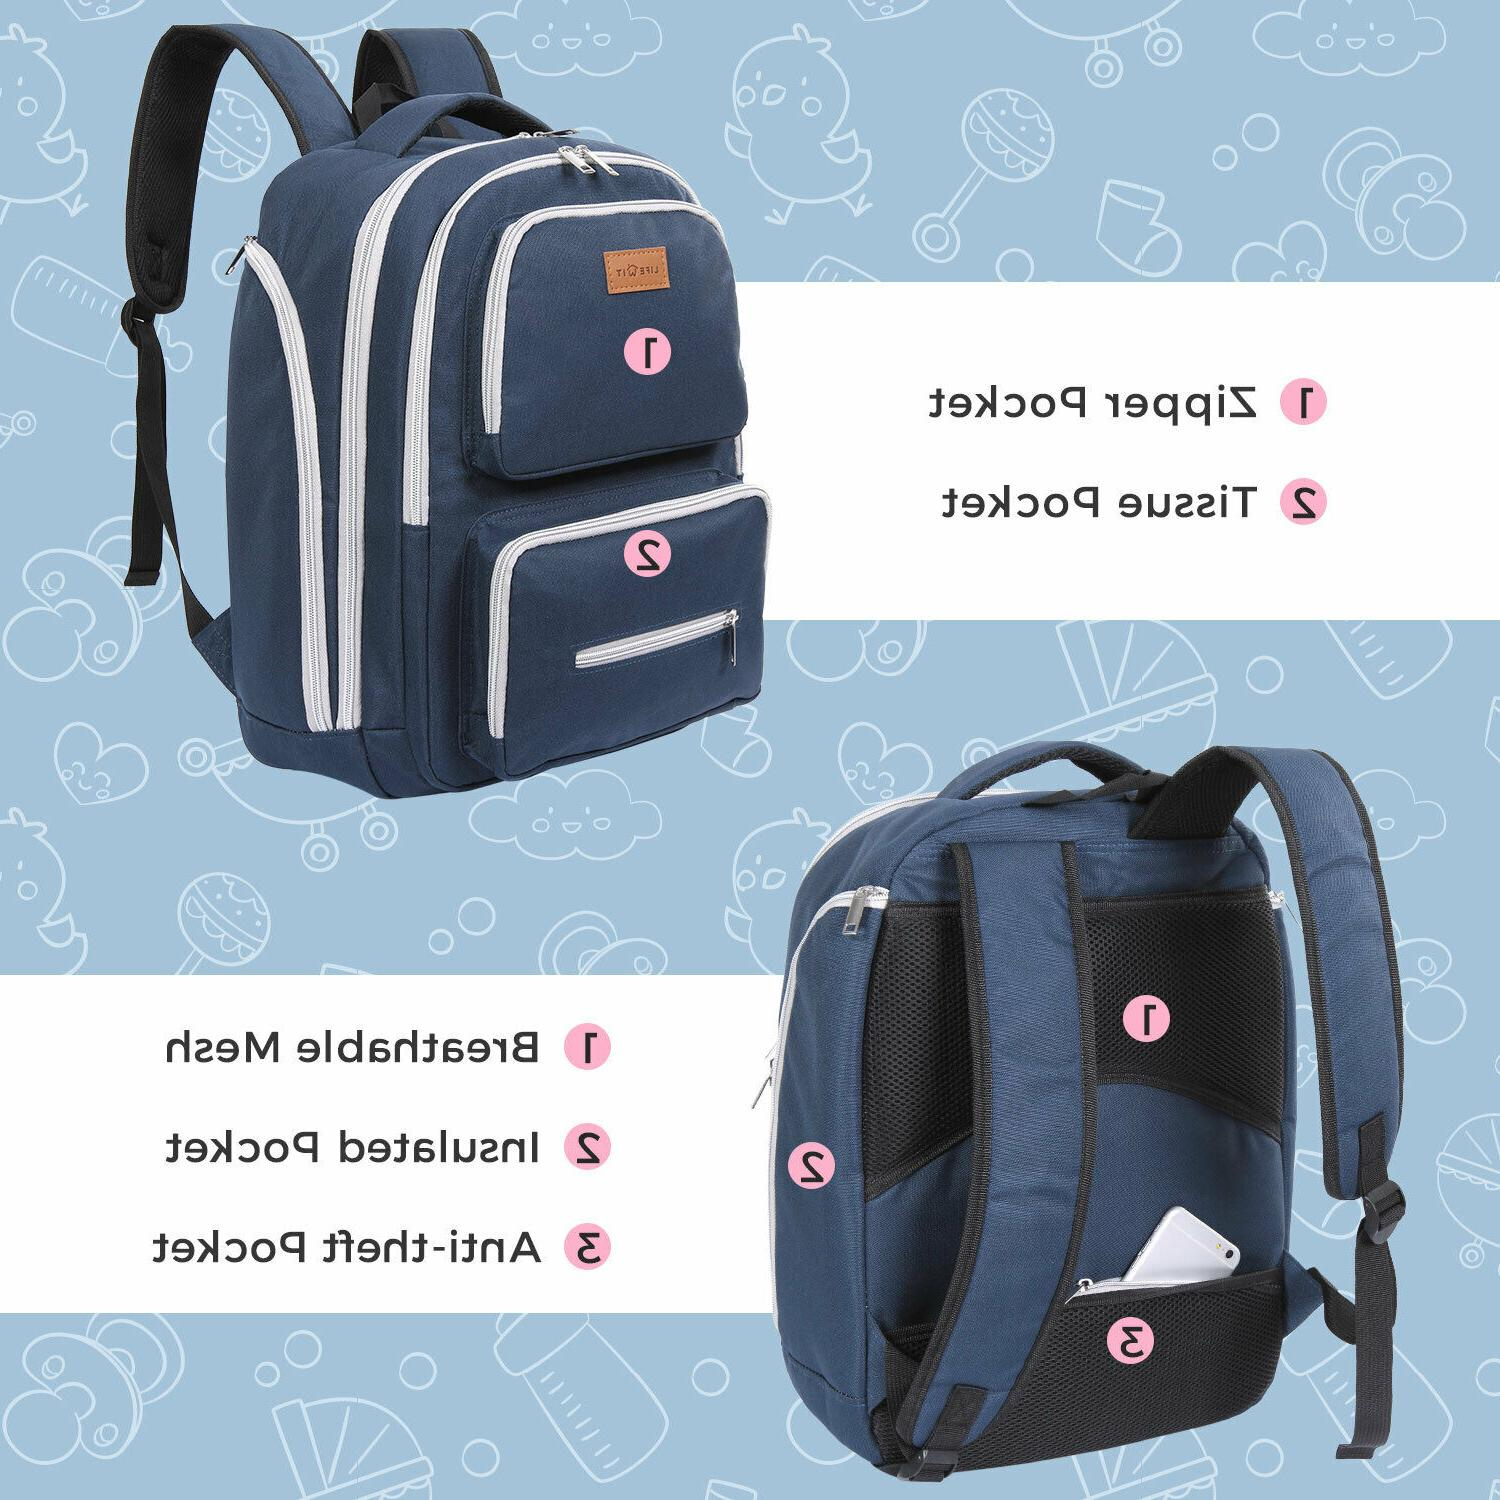 Lifewit Baby Diaper Backpack Mummy Travel Nappy Maternity Bag